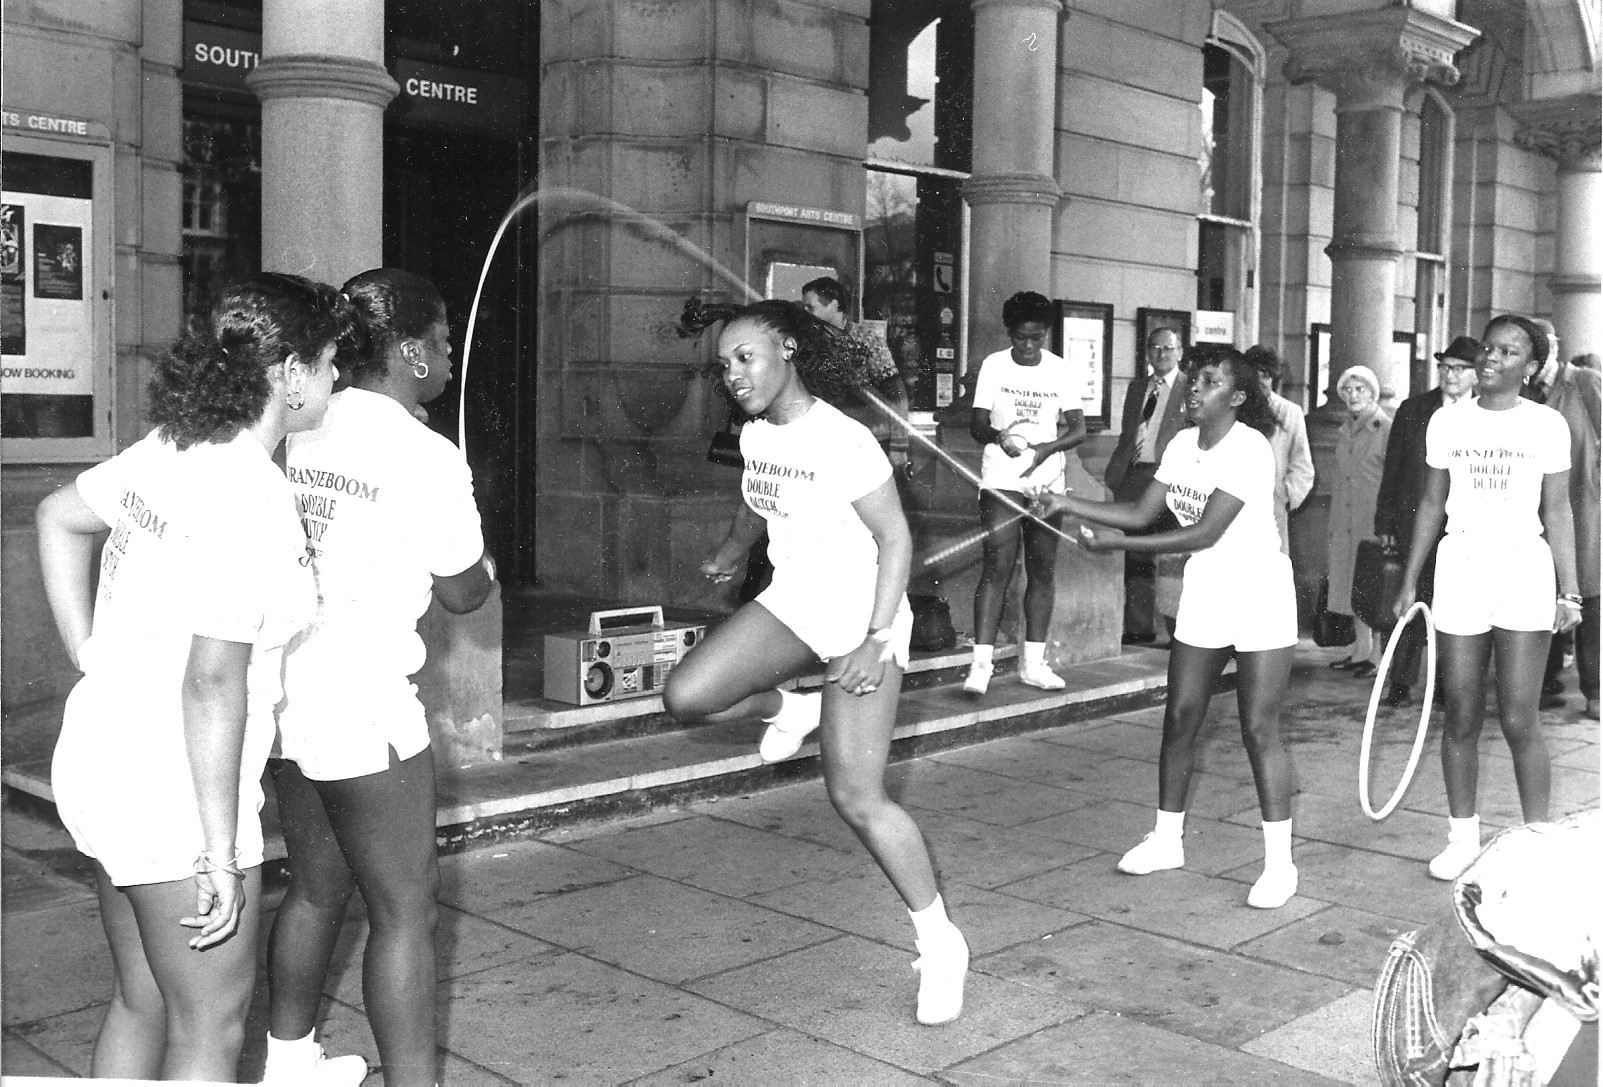 Oranjeboom Double Dutch perform with a skipping rope, a hula hoop and a ghetto blaster outside Southport Arts Centre on Lord Street in Southport in November 1983